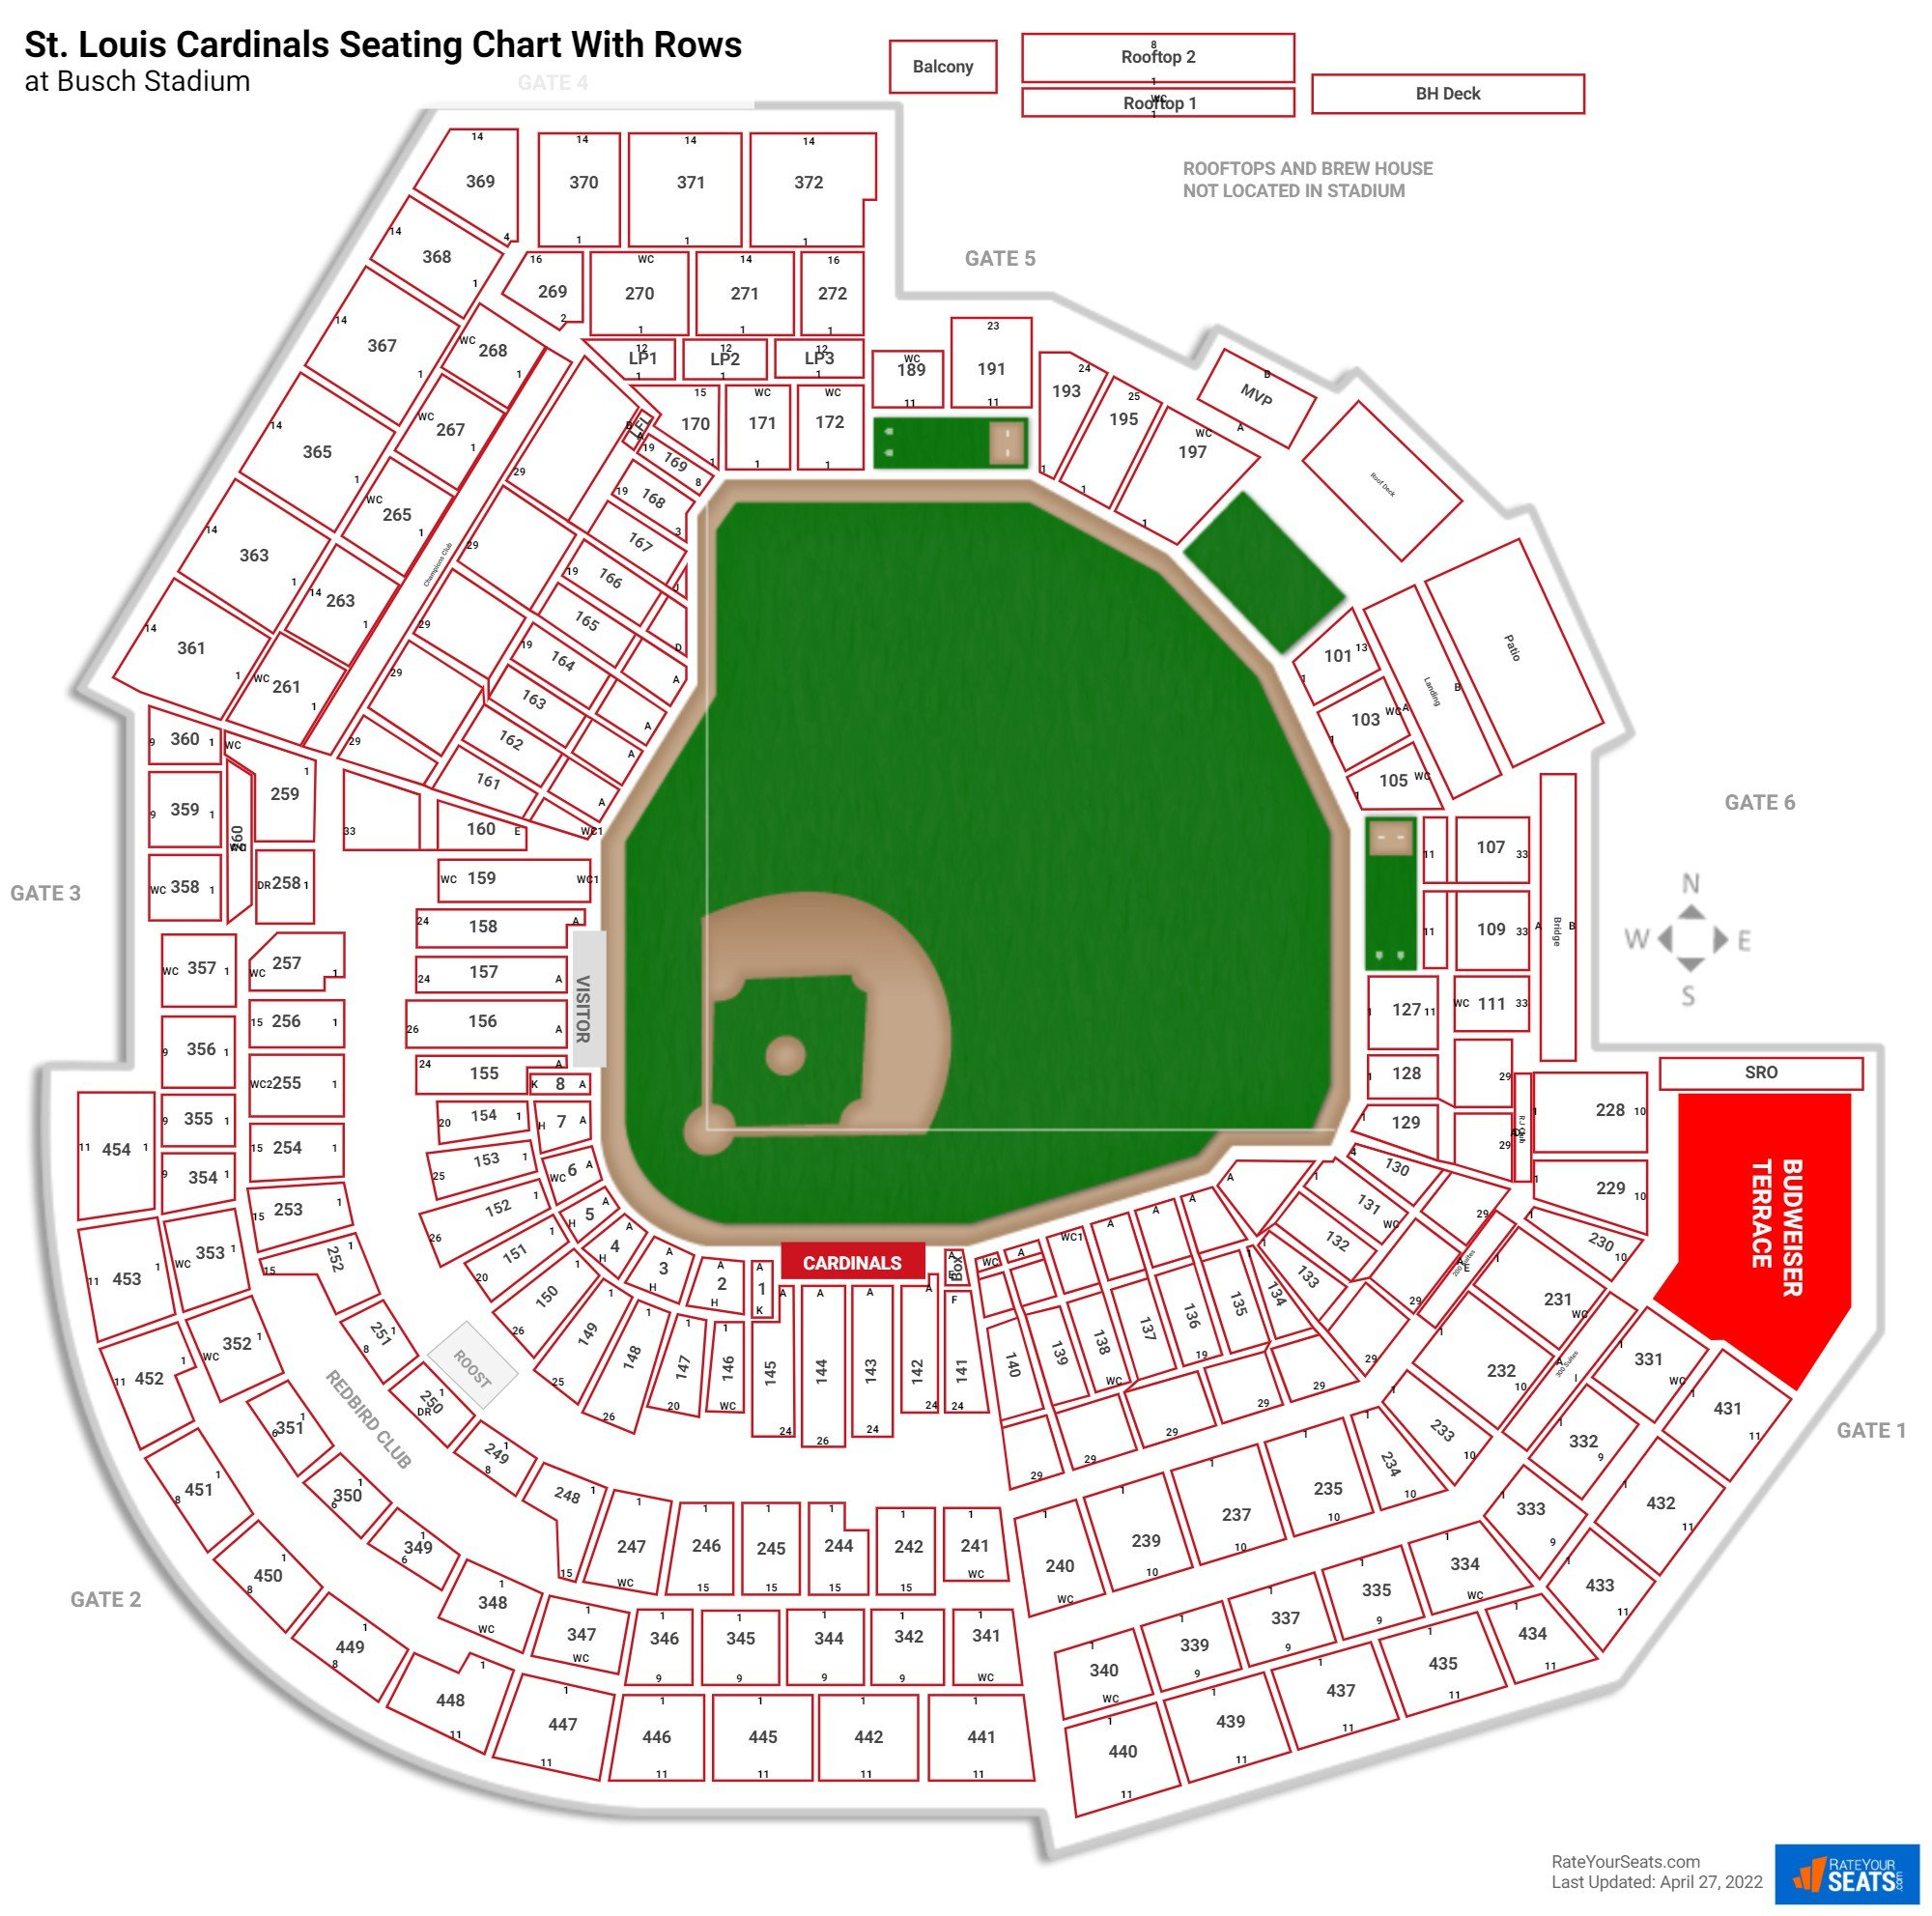 Busch Stadium seating chart with rows